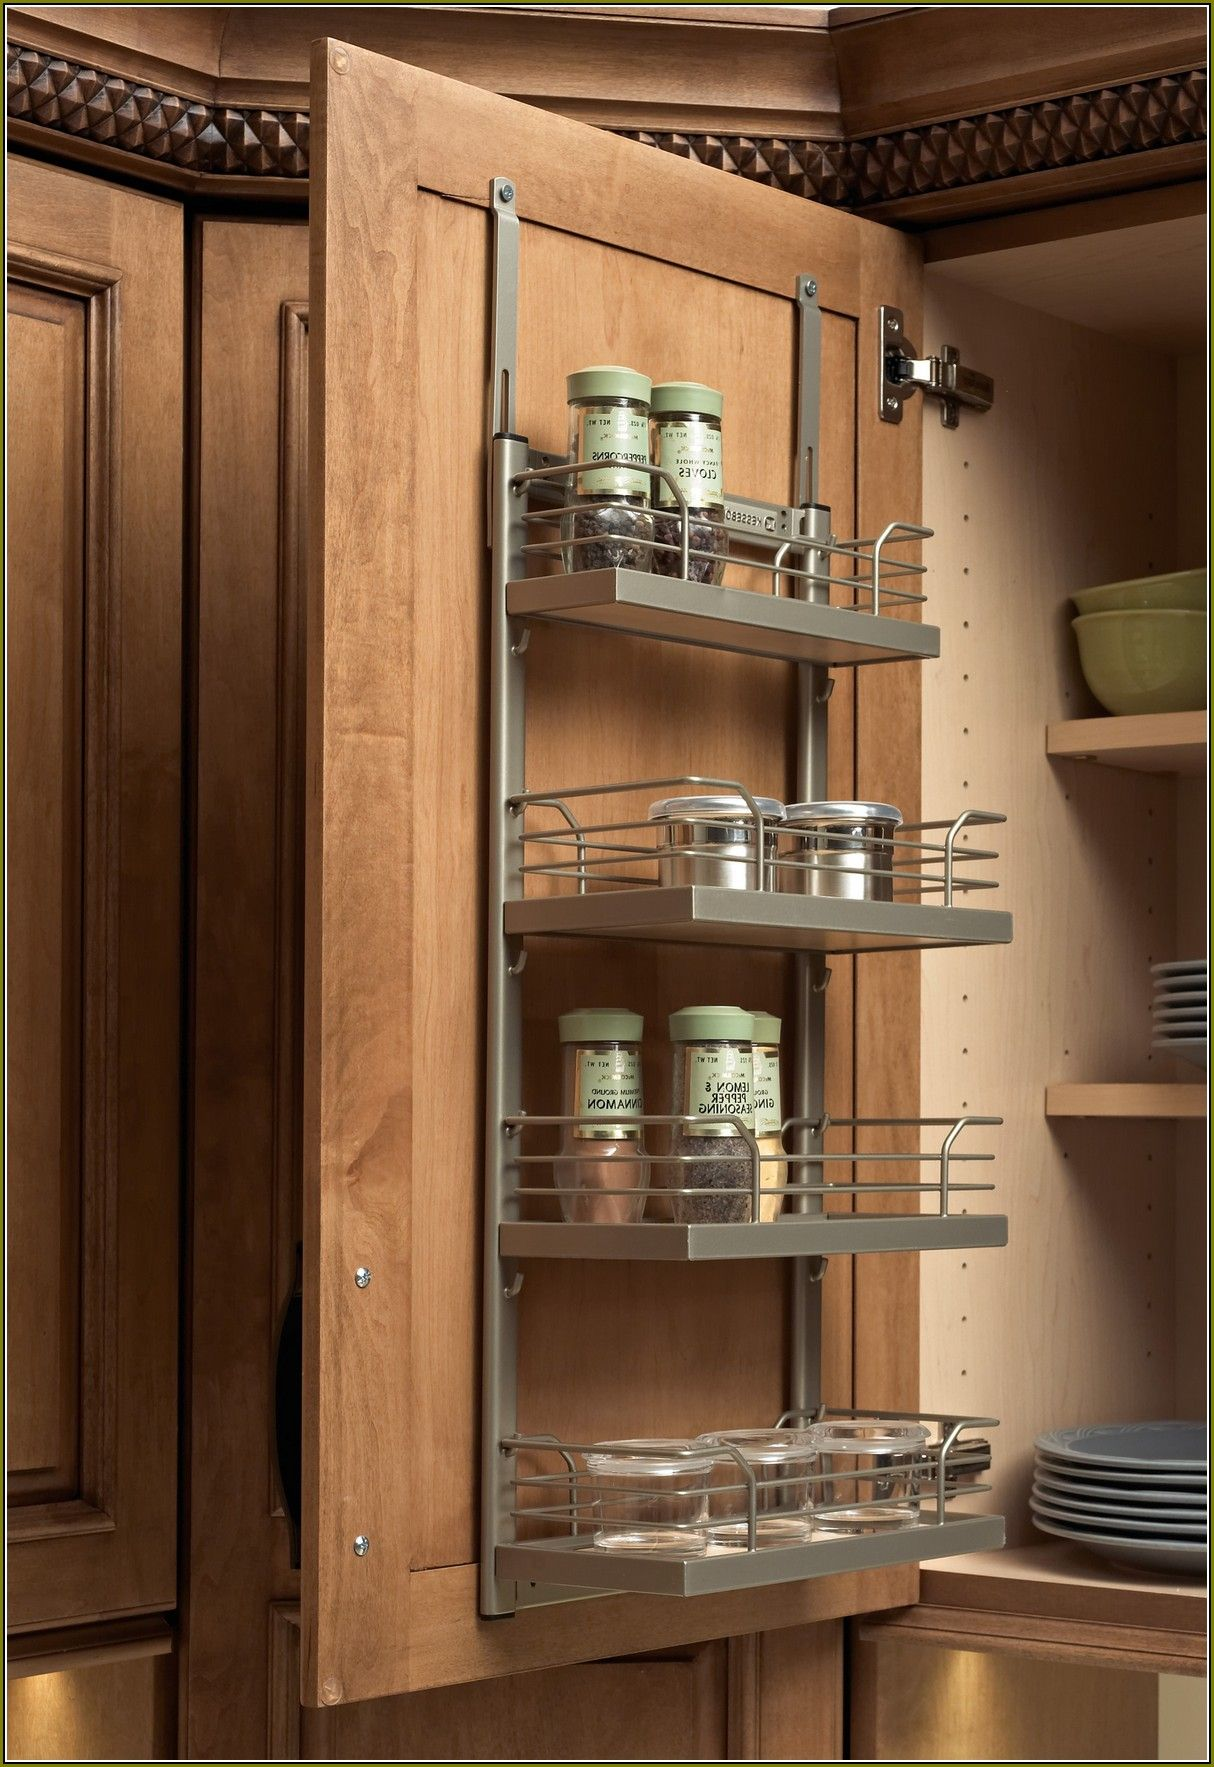 9 Awesome Narrow Cabinet Spice Rack Images Kitchen Upgrade Diy Small Kitchen Decor Cabinet Spice Rack